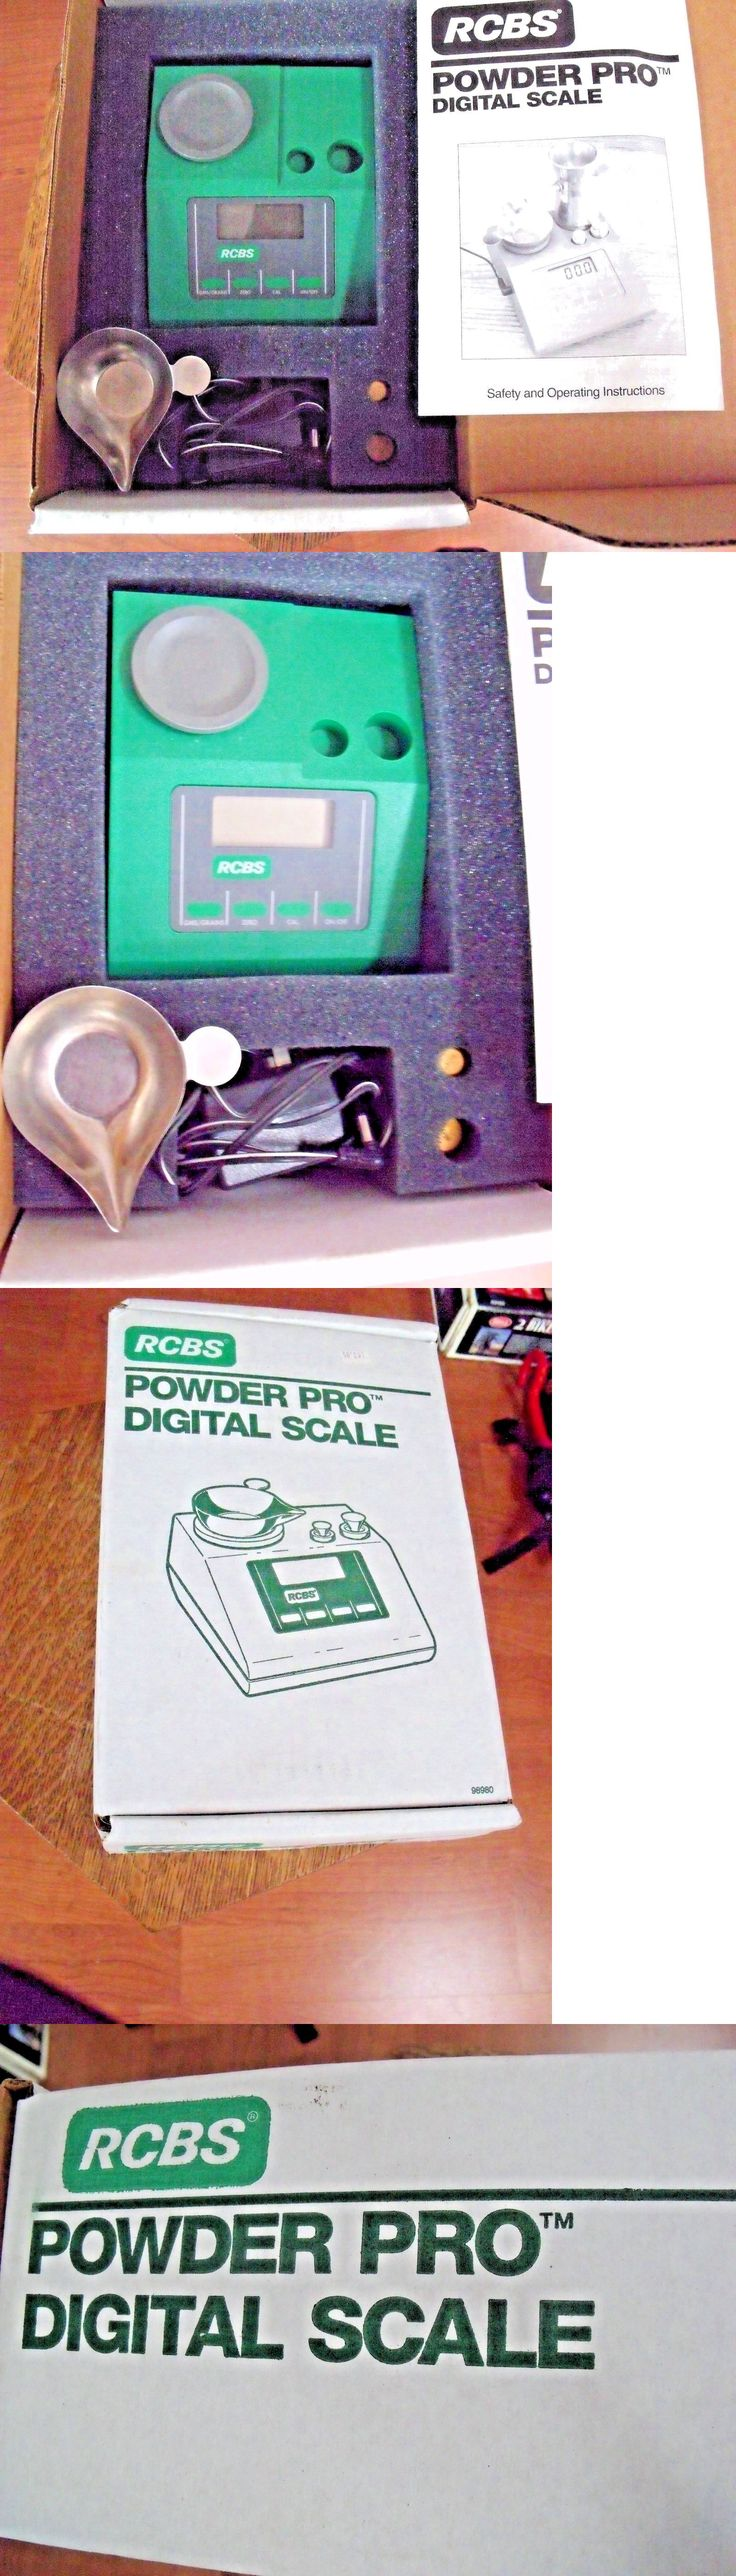 Powder Measures Scales 71119: Rcbs Powder Pro Digital Reloading Scale 98980 Brand New In The Box -> BUY IT NOW ONLY: $125 on eBay!